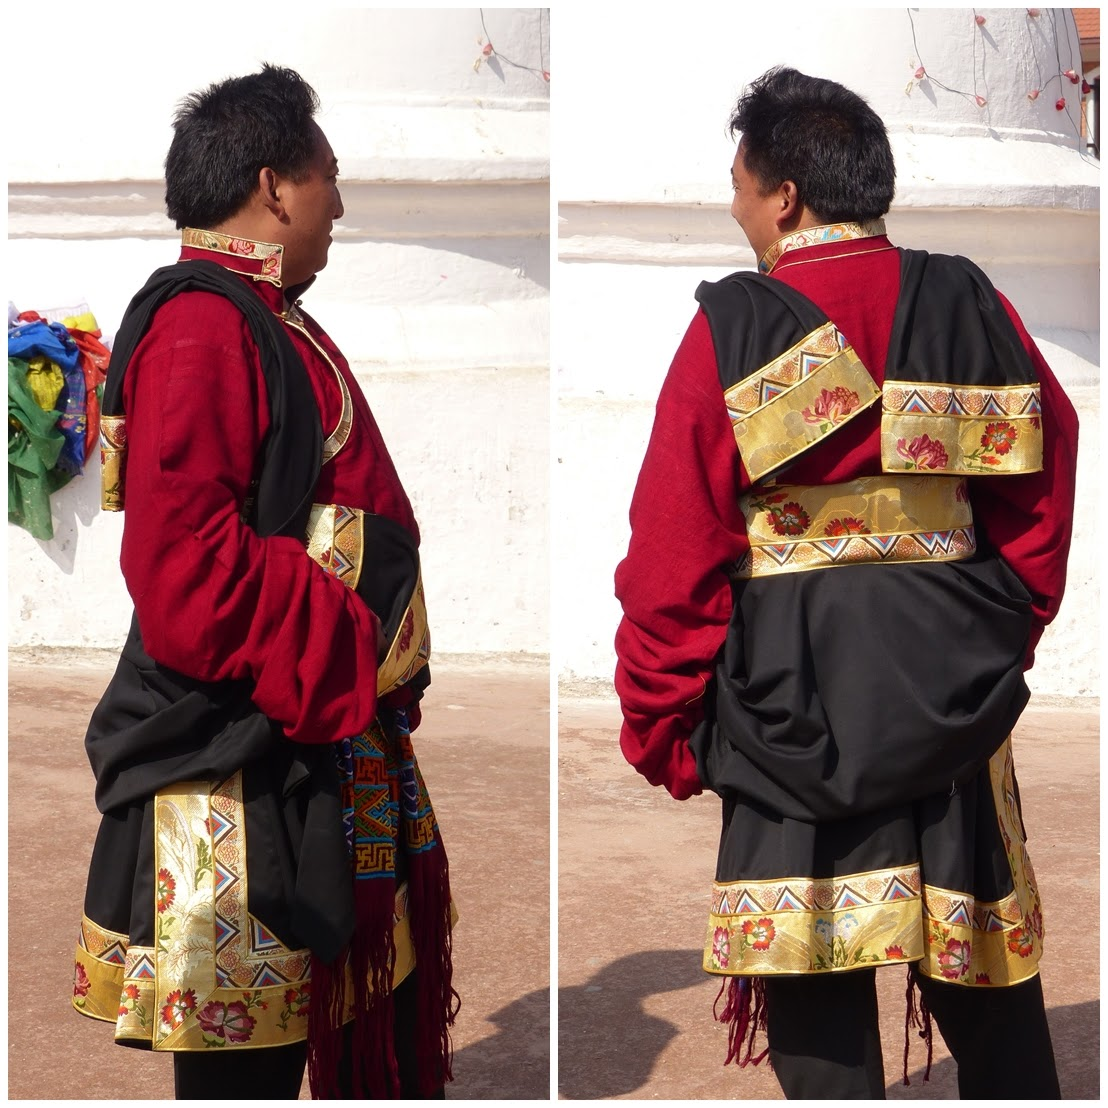 Tibetan man wearing traditional dress